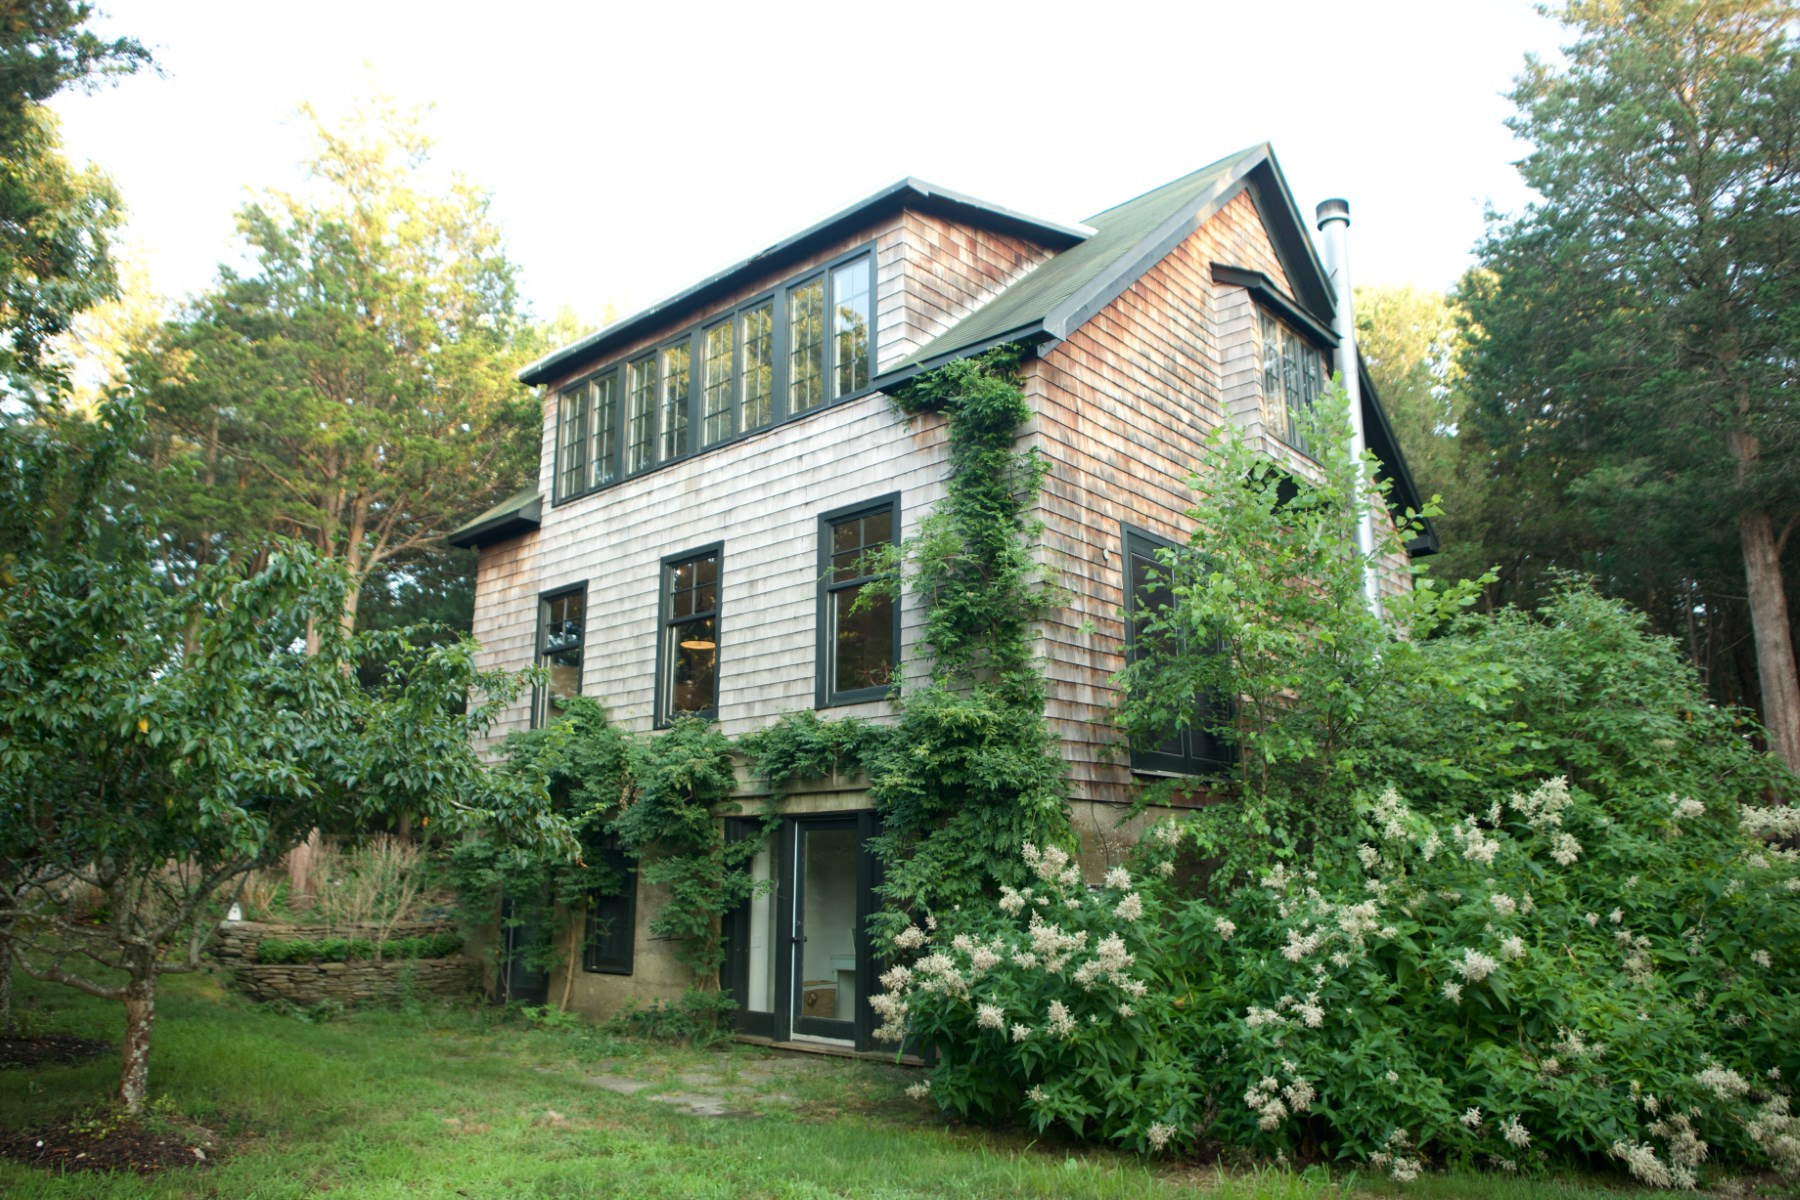 Single Family Home for Rent at Reduced Stylish Summer Rental 10 Sims Avenue Sag Harbor, New York 11963 United States